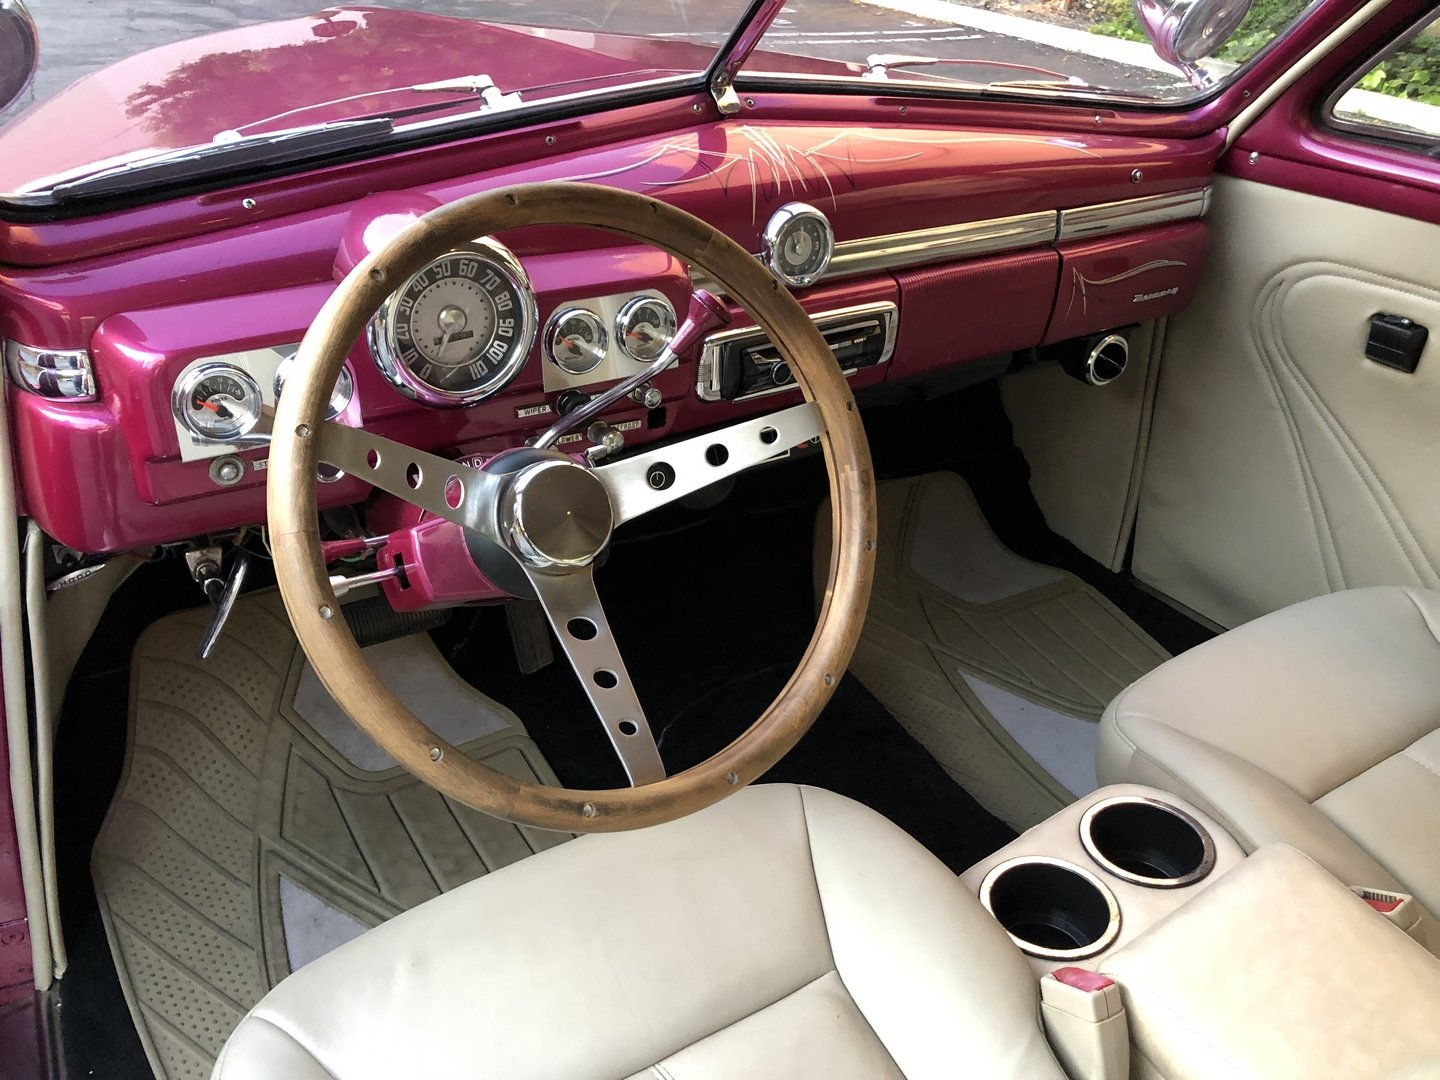 1950 MERCURY CUSTOM COUPE For Sale (picture 3 of 6)